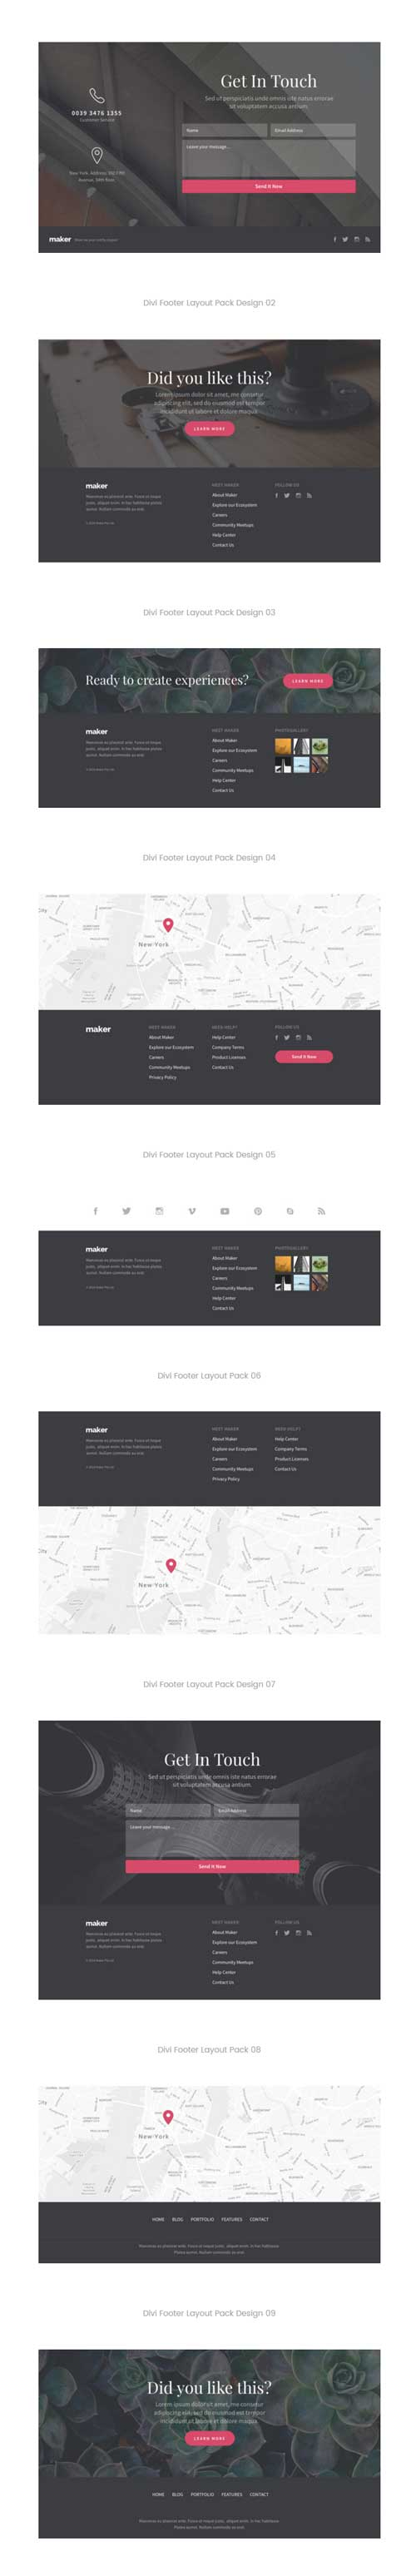 divi footer layout pack